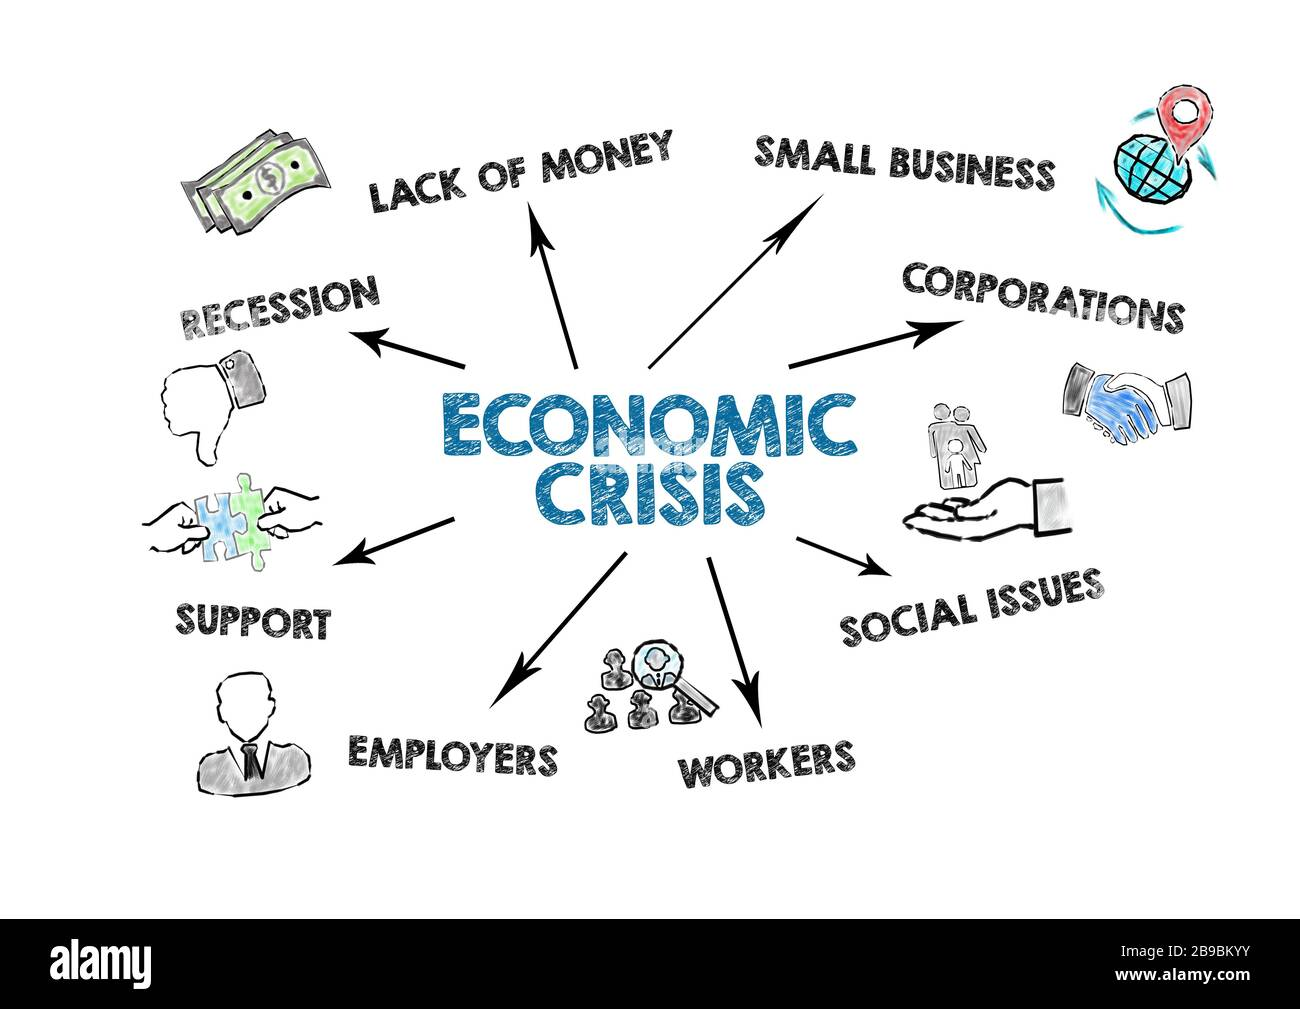 Economic Crisis. Recession, Lack Of Money, Social Issues and Support concept. Chart with keywords and icons on white background Stock Photo